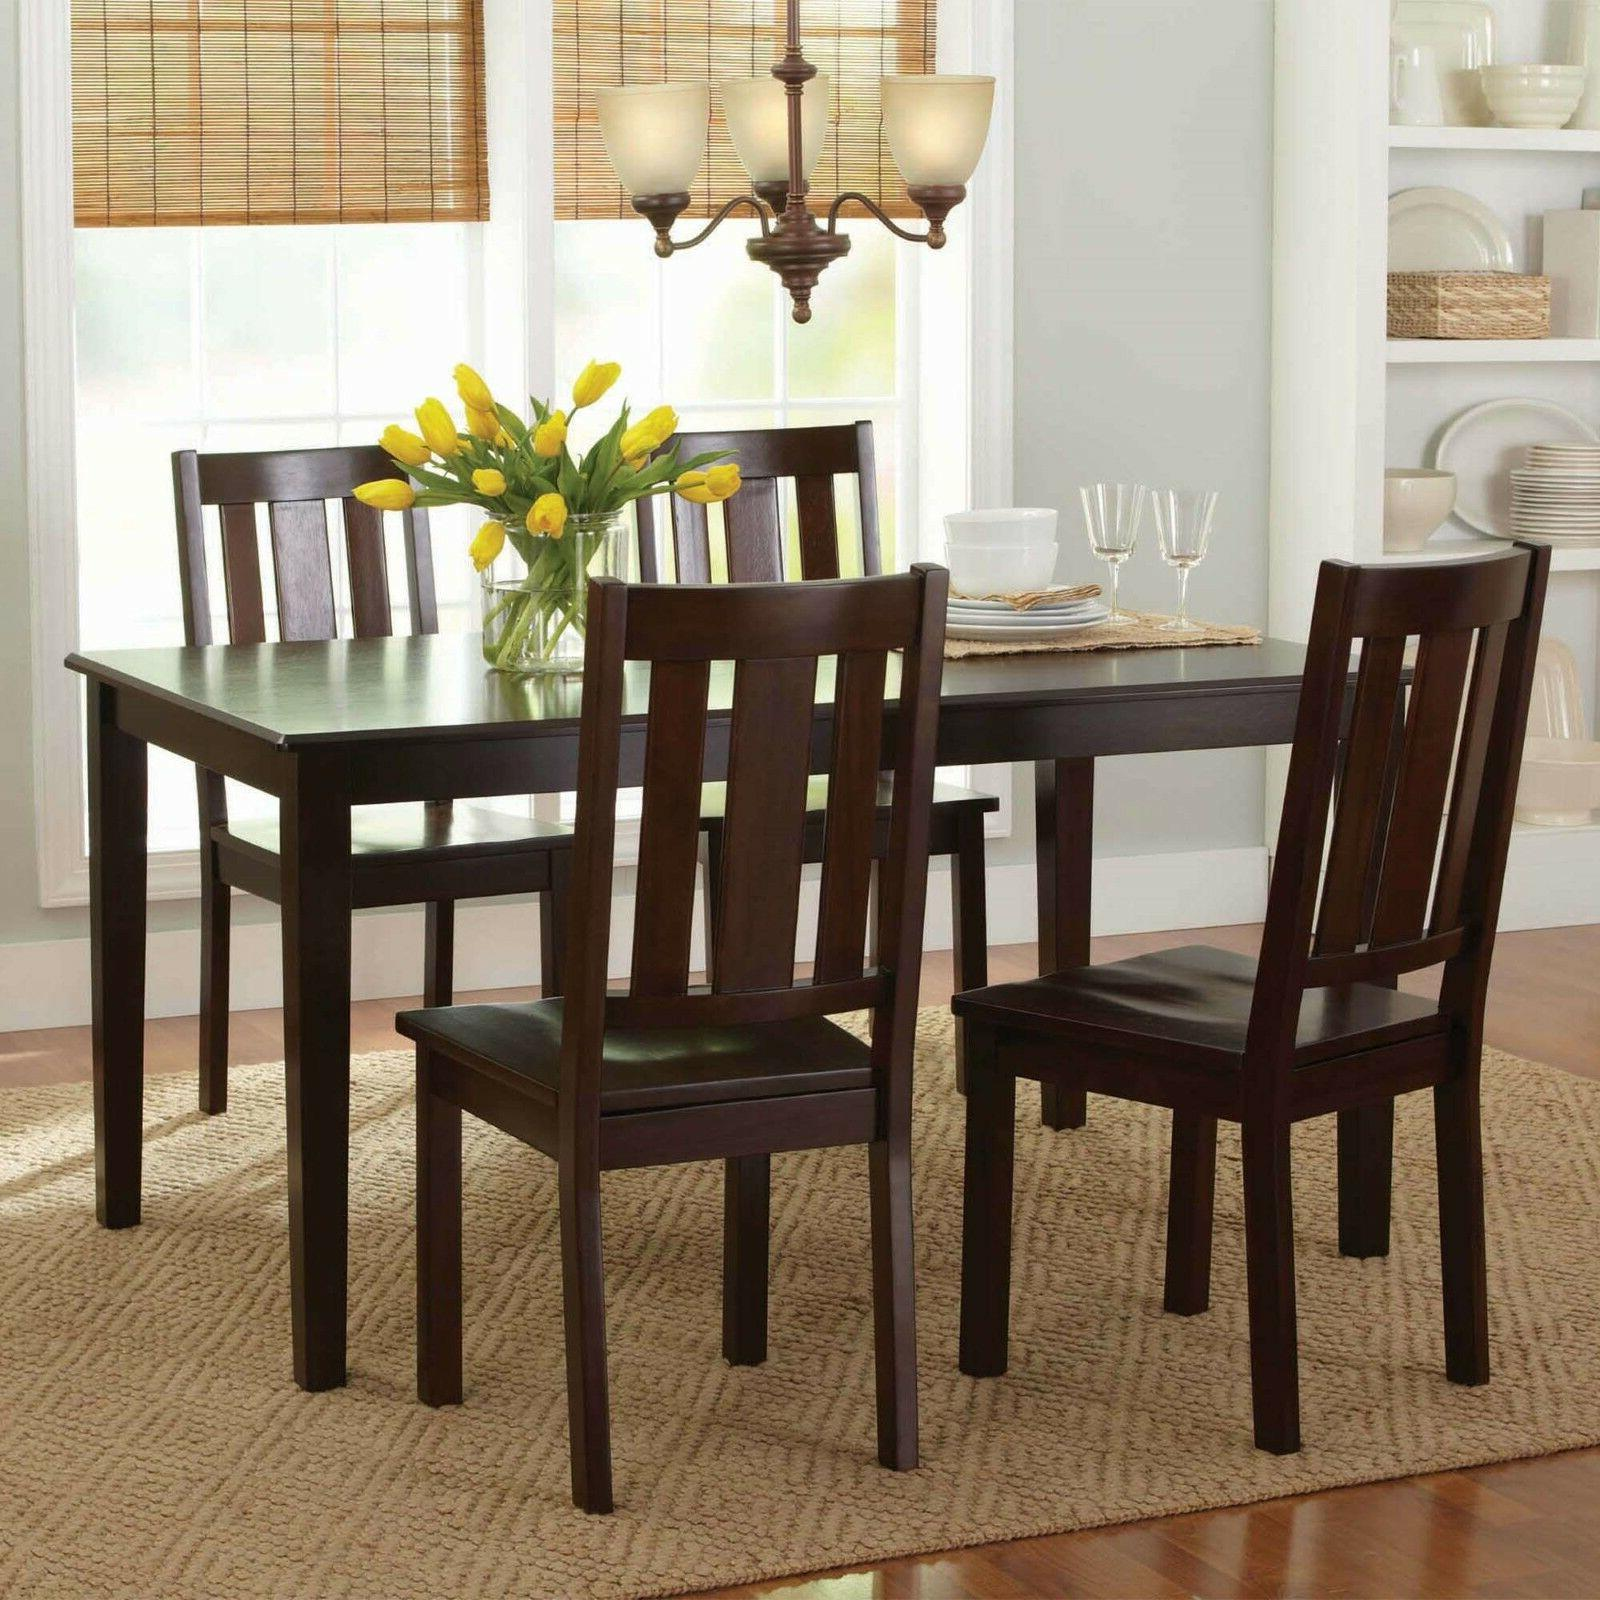 7 Home Chairs Mocha Solid Wood